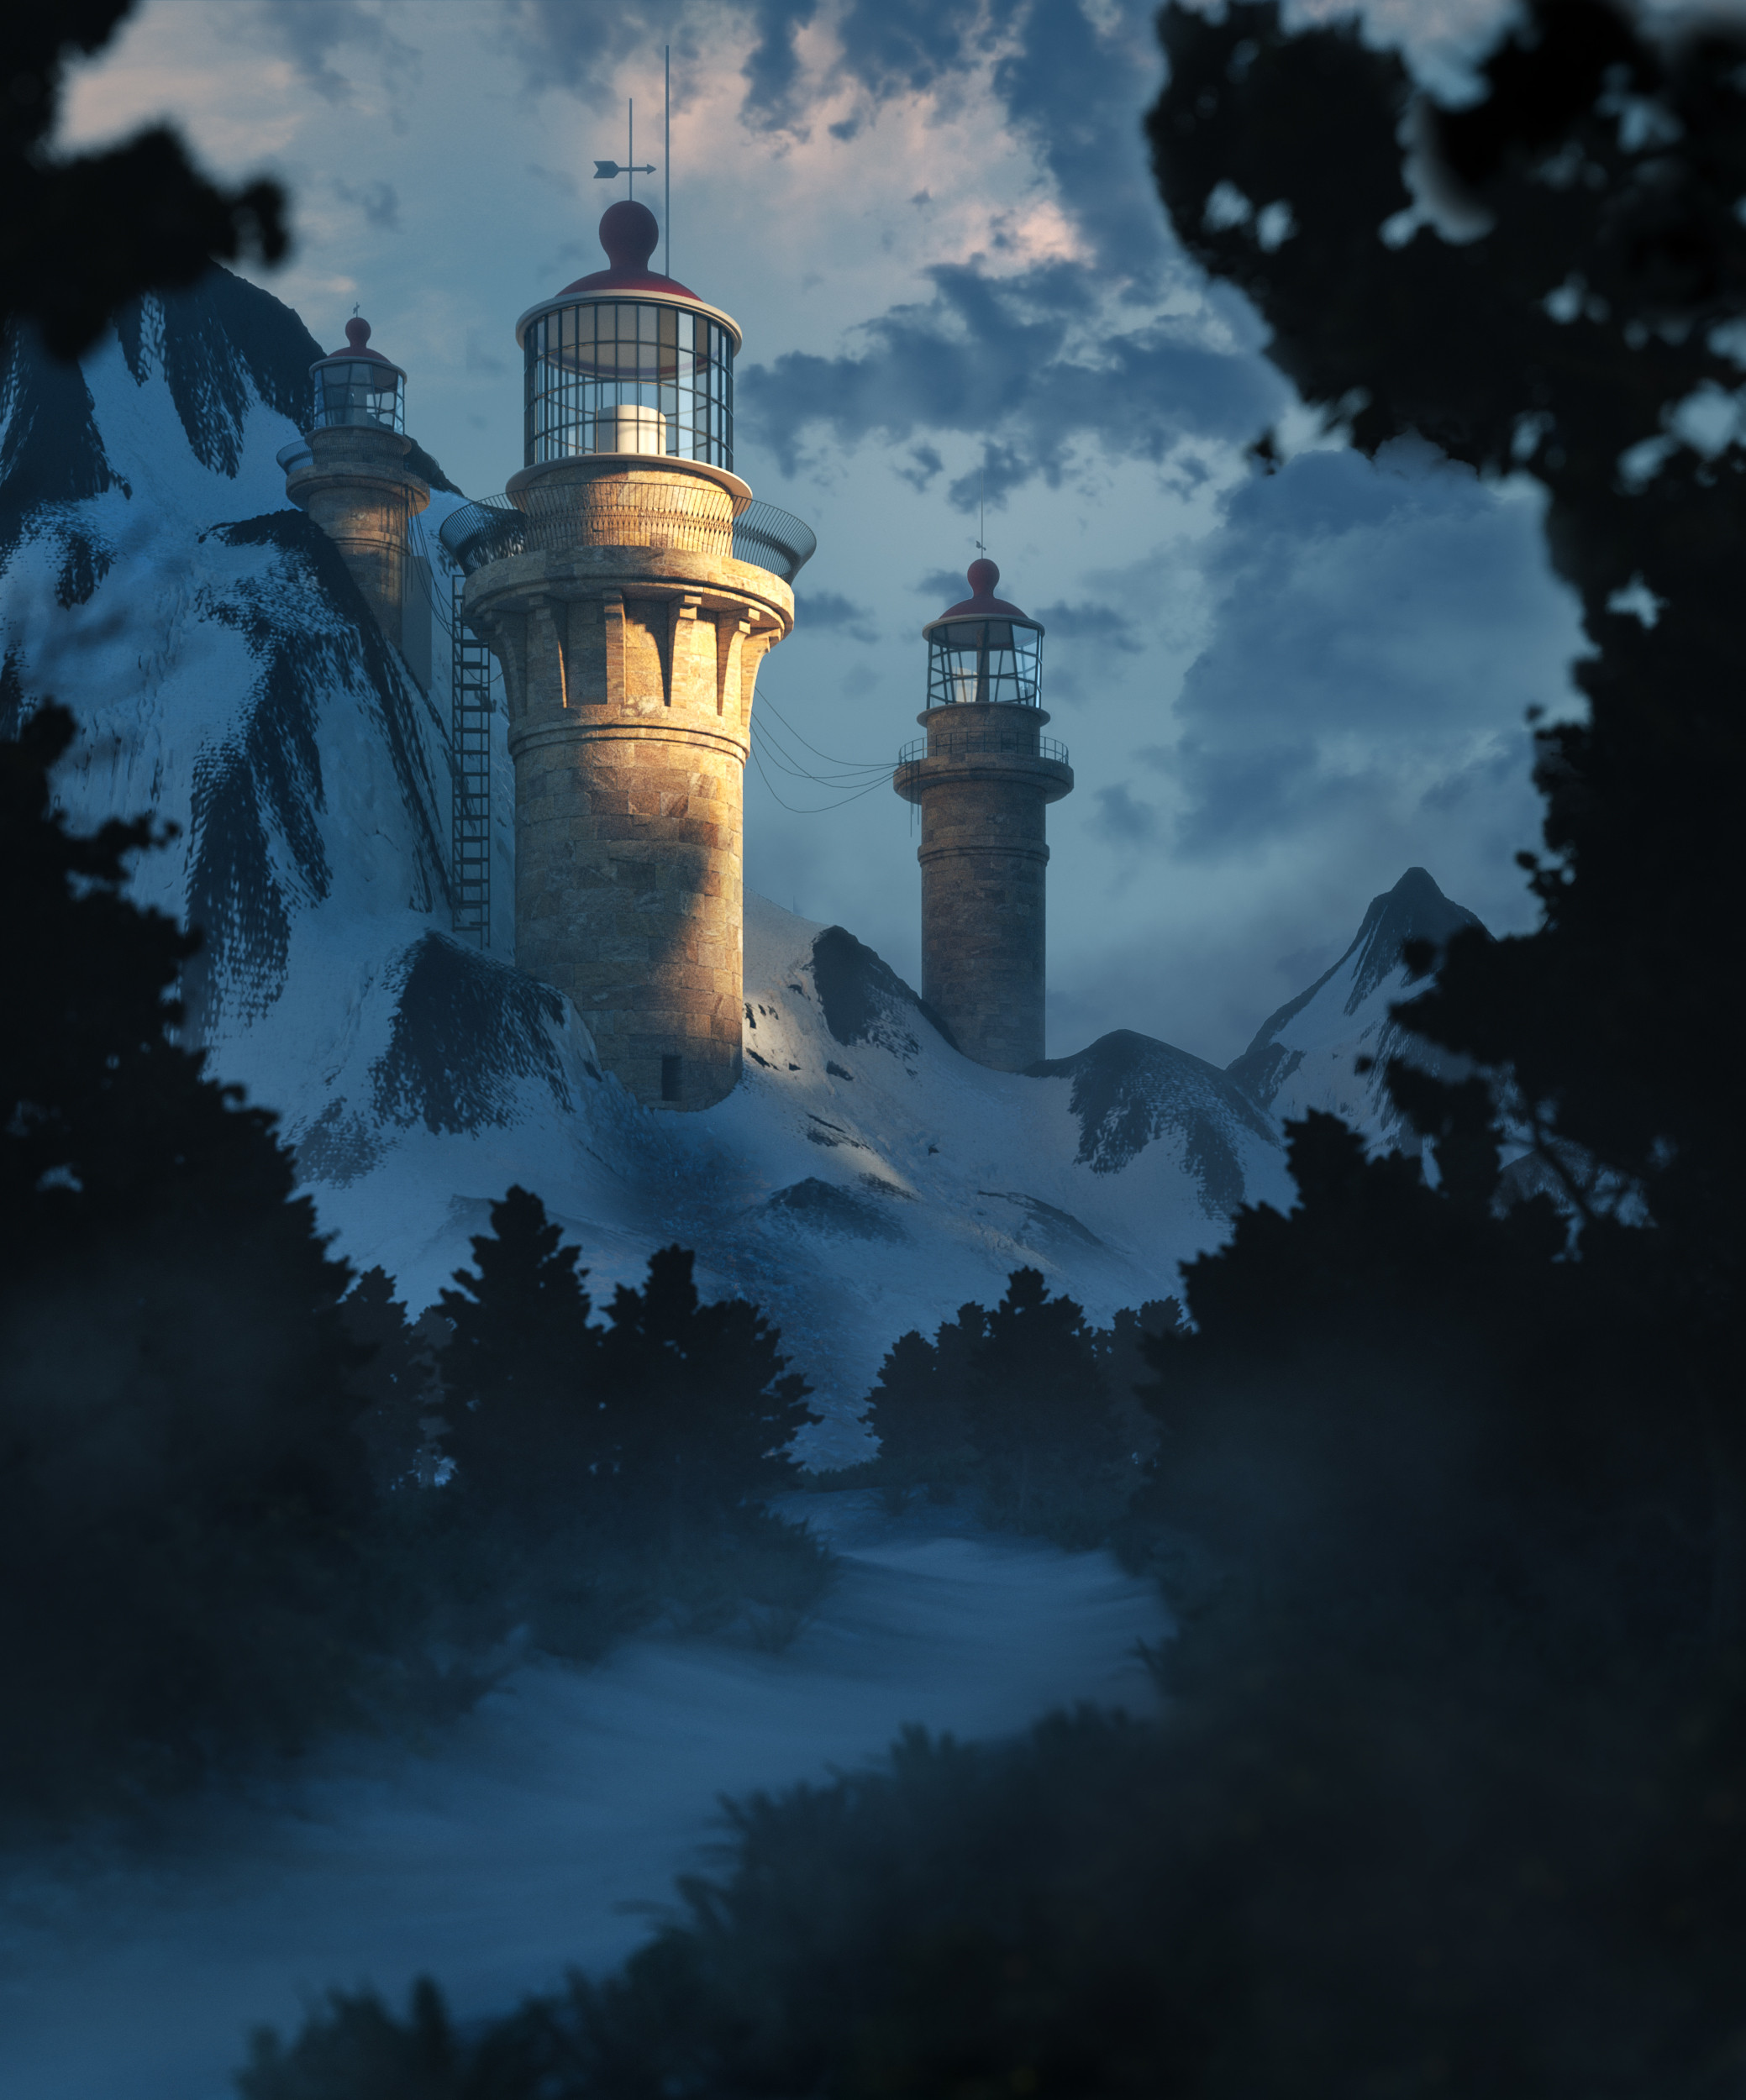 136940 download wallpaper Lighthouse, Building, Rocks, Branches, Rivers, Art screensavers and pictures for free